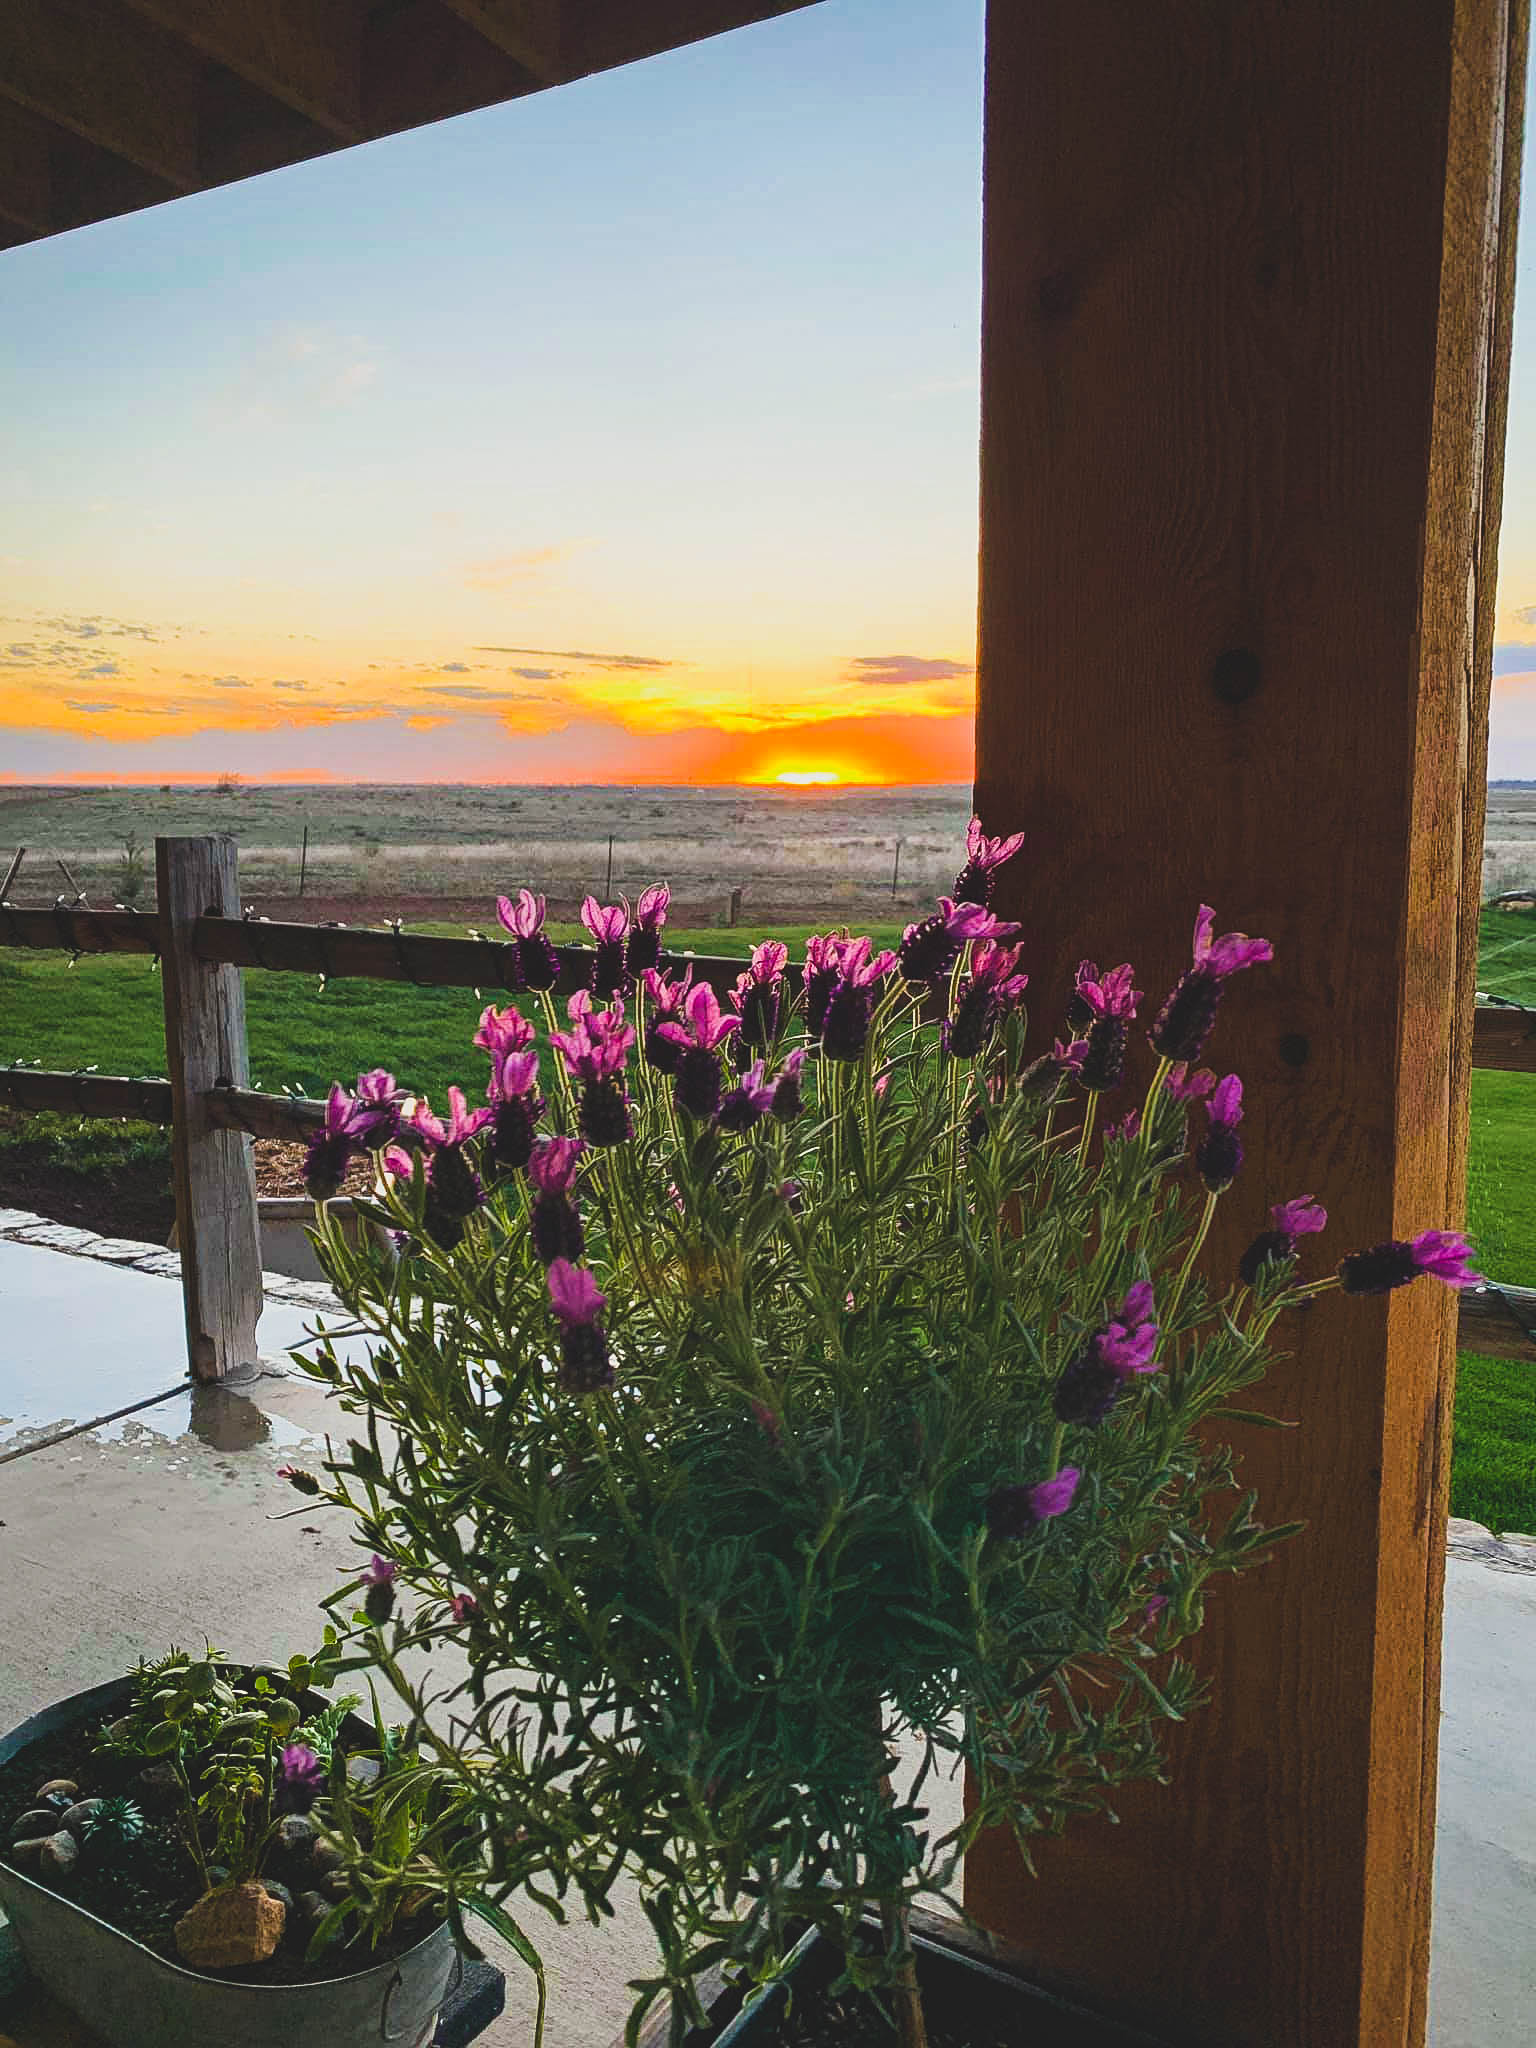 Flowers on the Patio - The Barn on Willow Creek